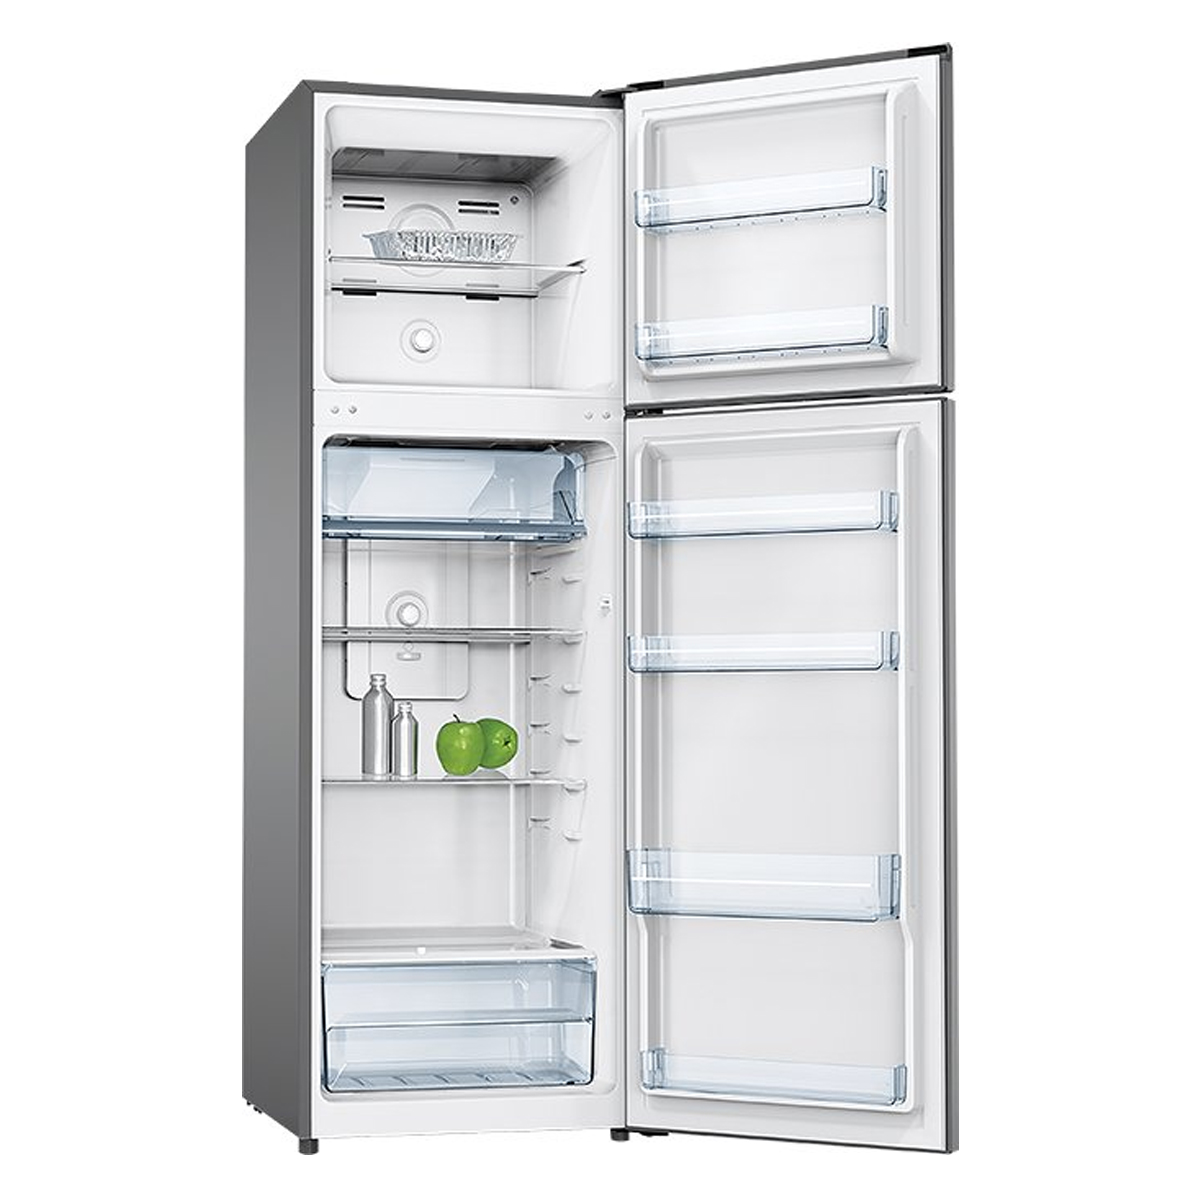 Lemair LTM268S 268L Top Mount Fridge 143055